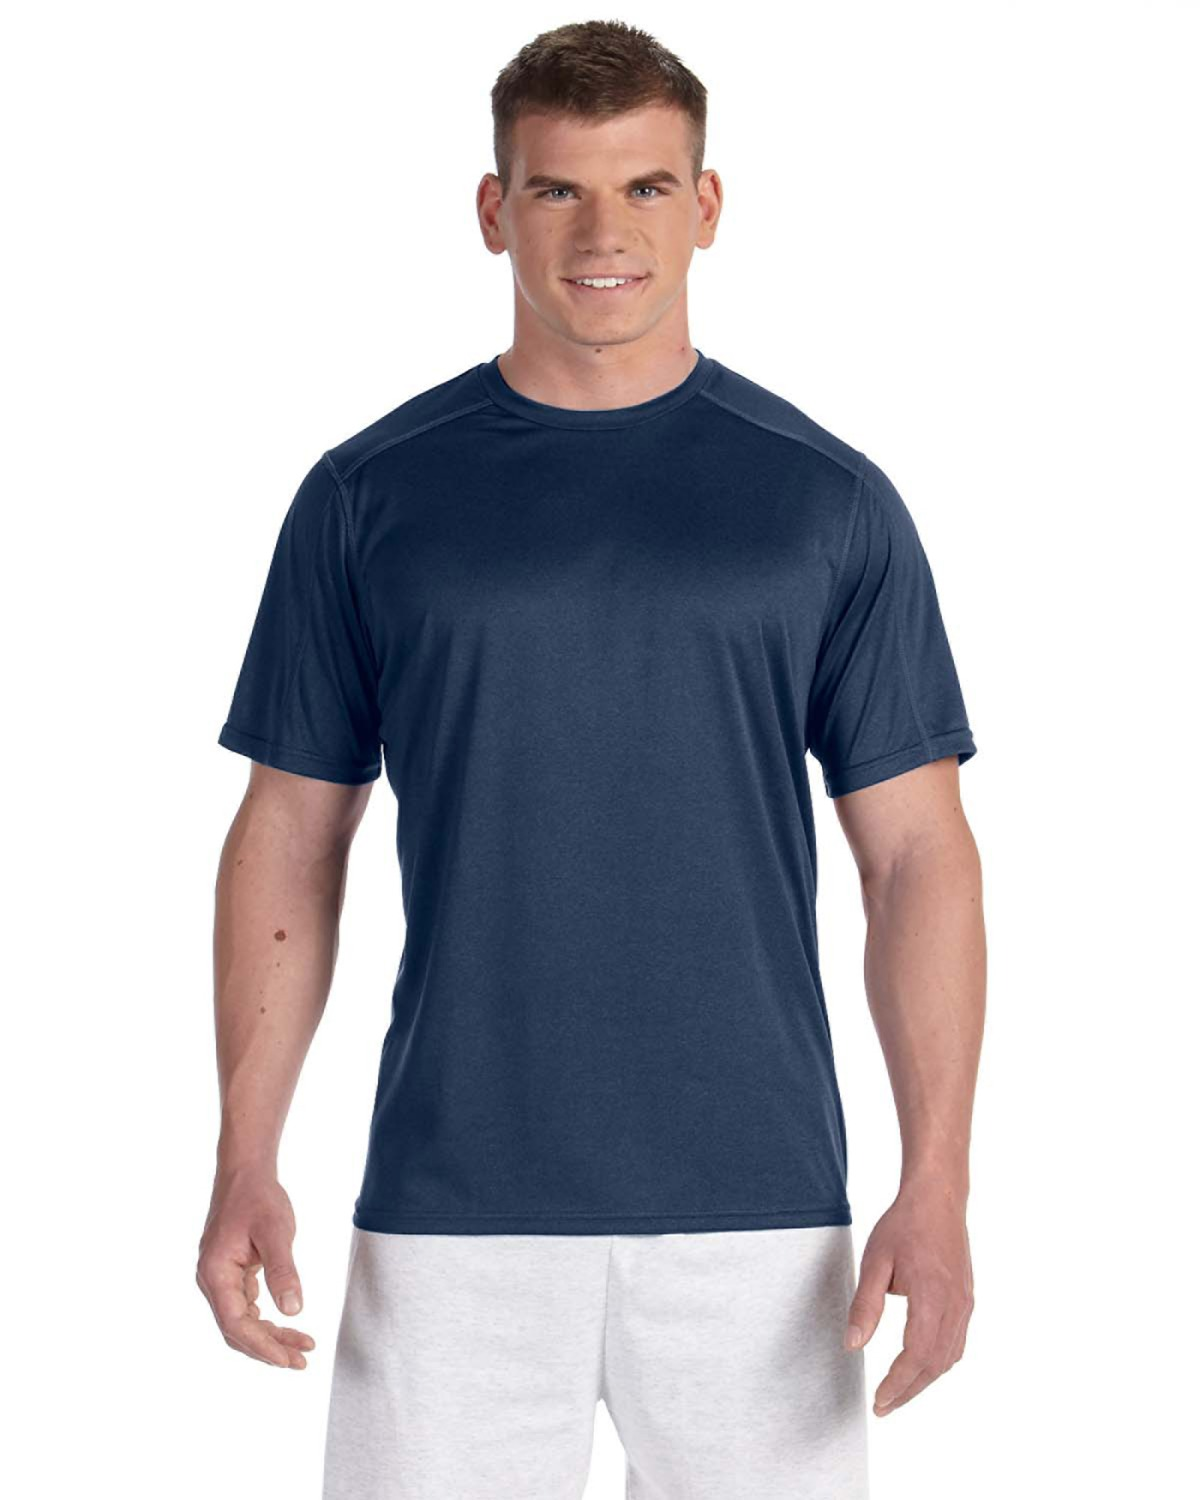 Adult Vapor® 3.8 oz. T-Shirt